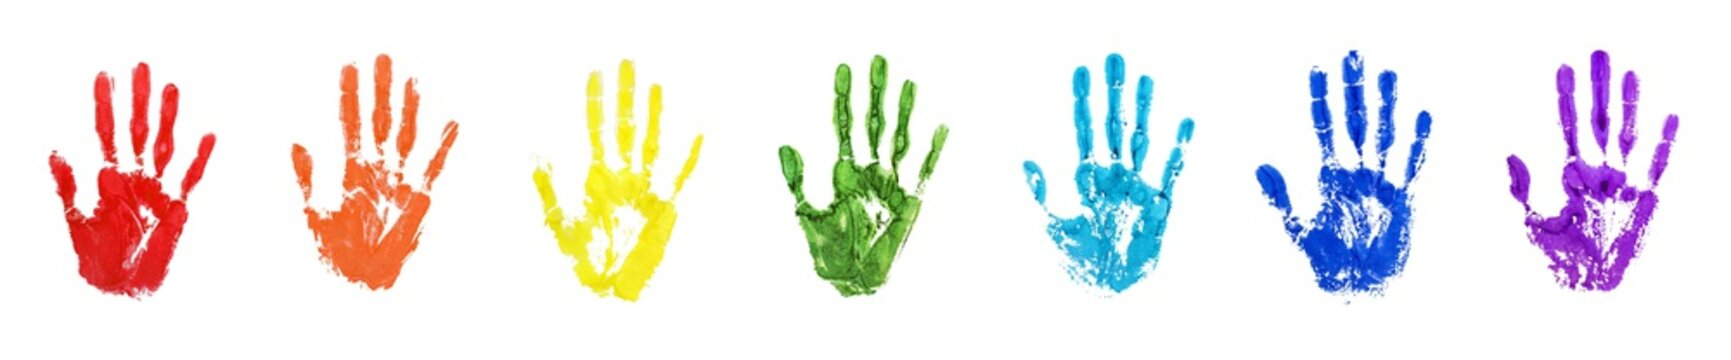 Rainbow color human hand print set white background isolated closeup, colorful watercolor drawn handprint illustration collection, palm and fingers silhouette, hand shape painted stamp, imprints group